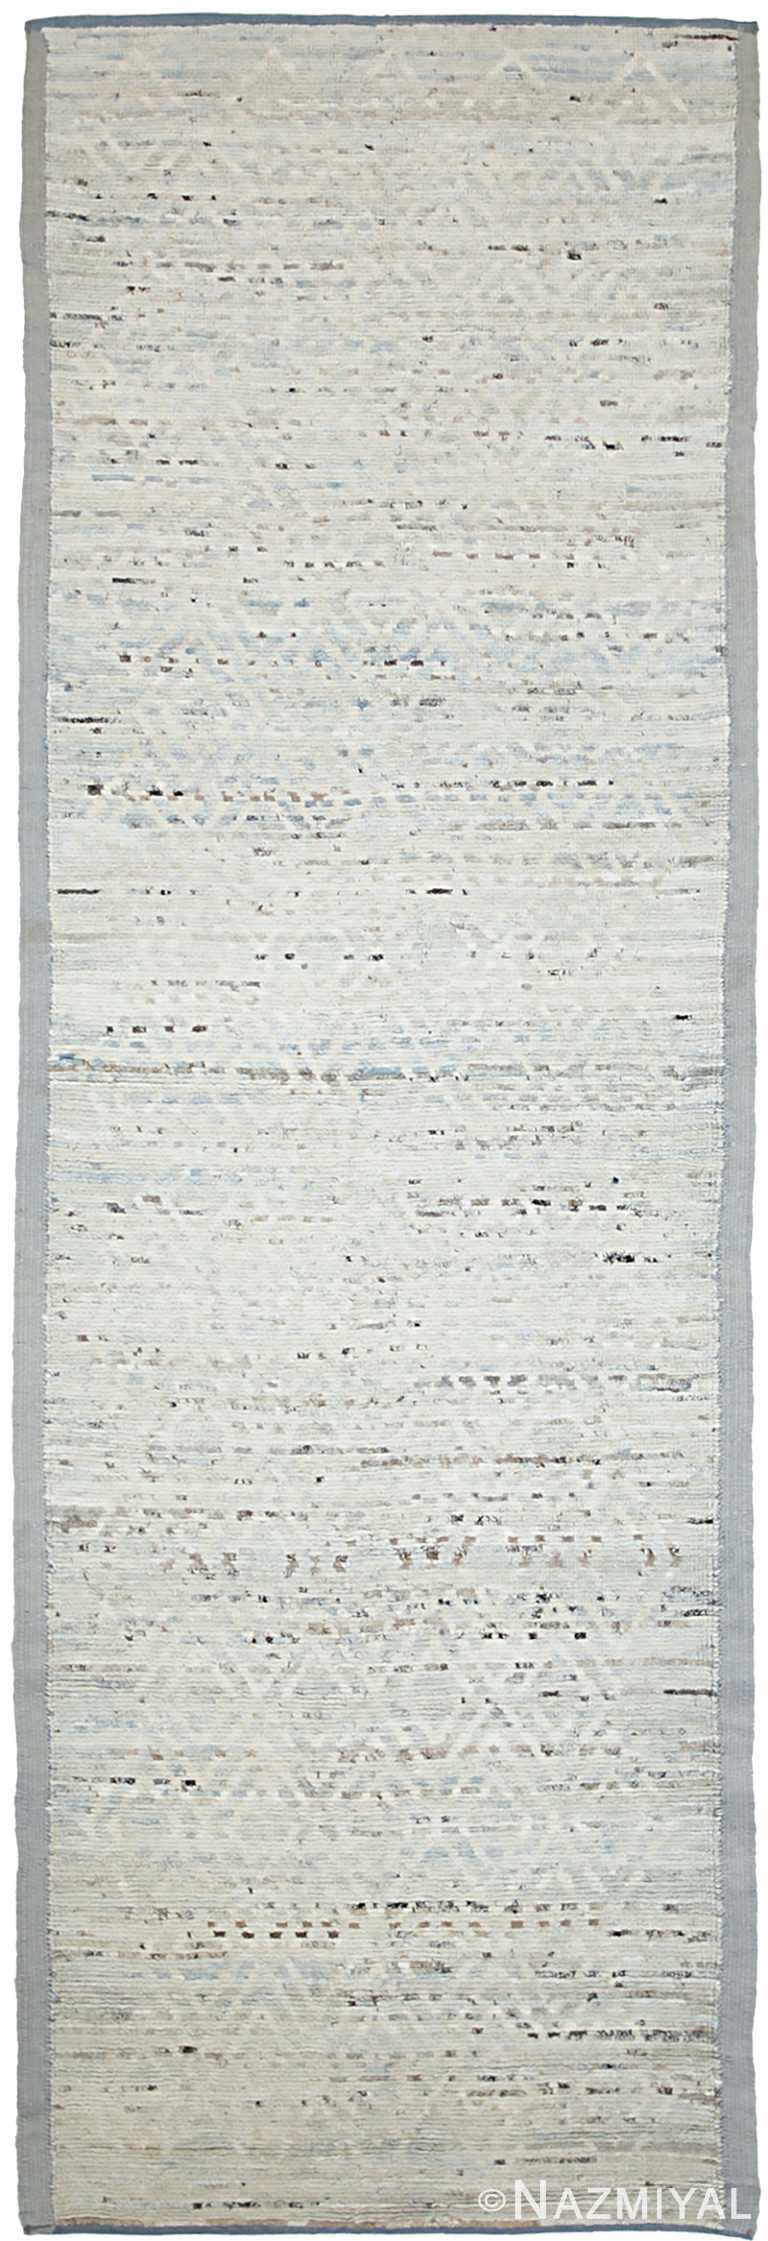 Soft Cream Modern Moroccan Style Afghan Rug 60121 by Nazmiyal NYC